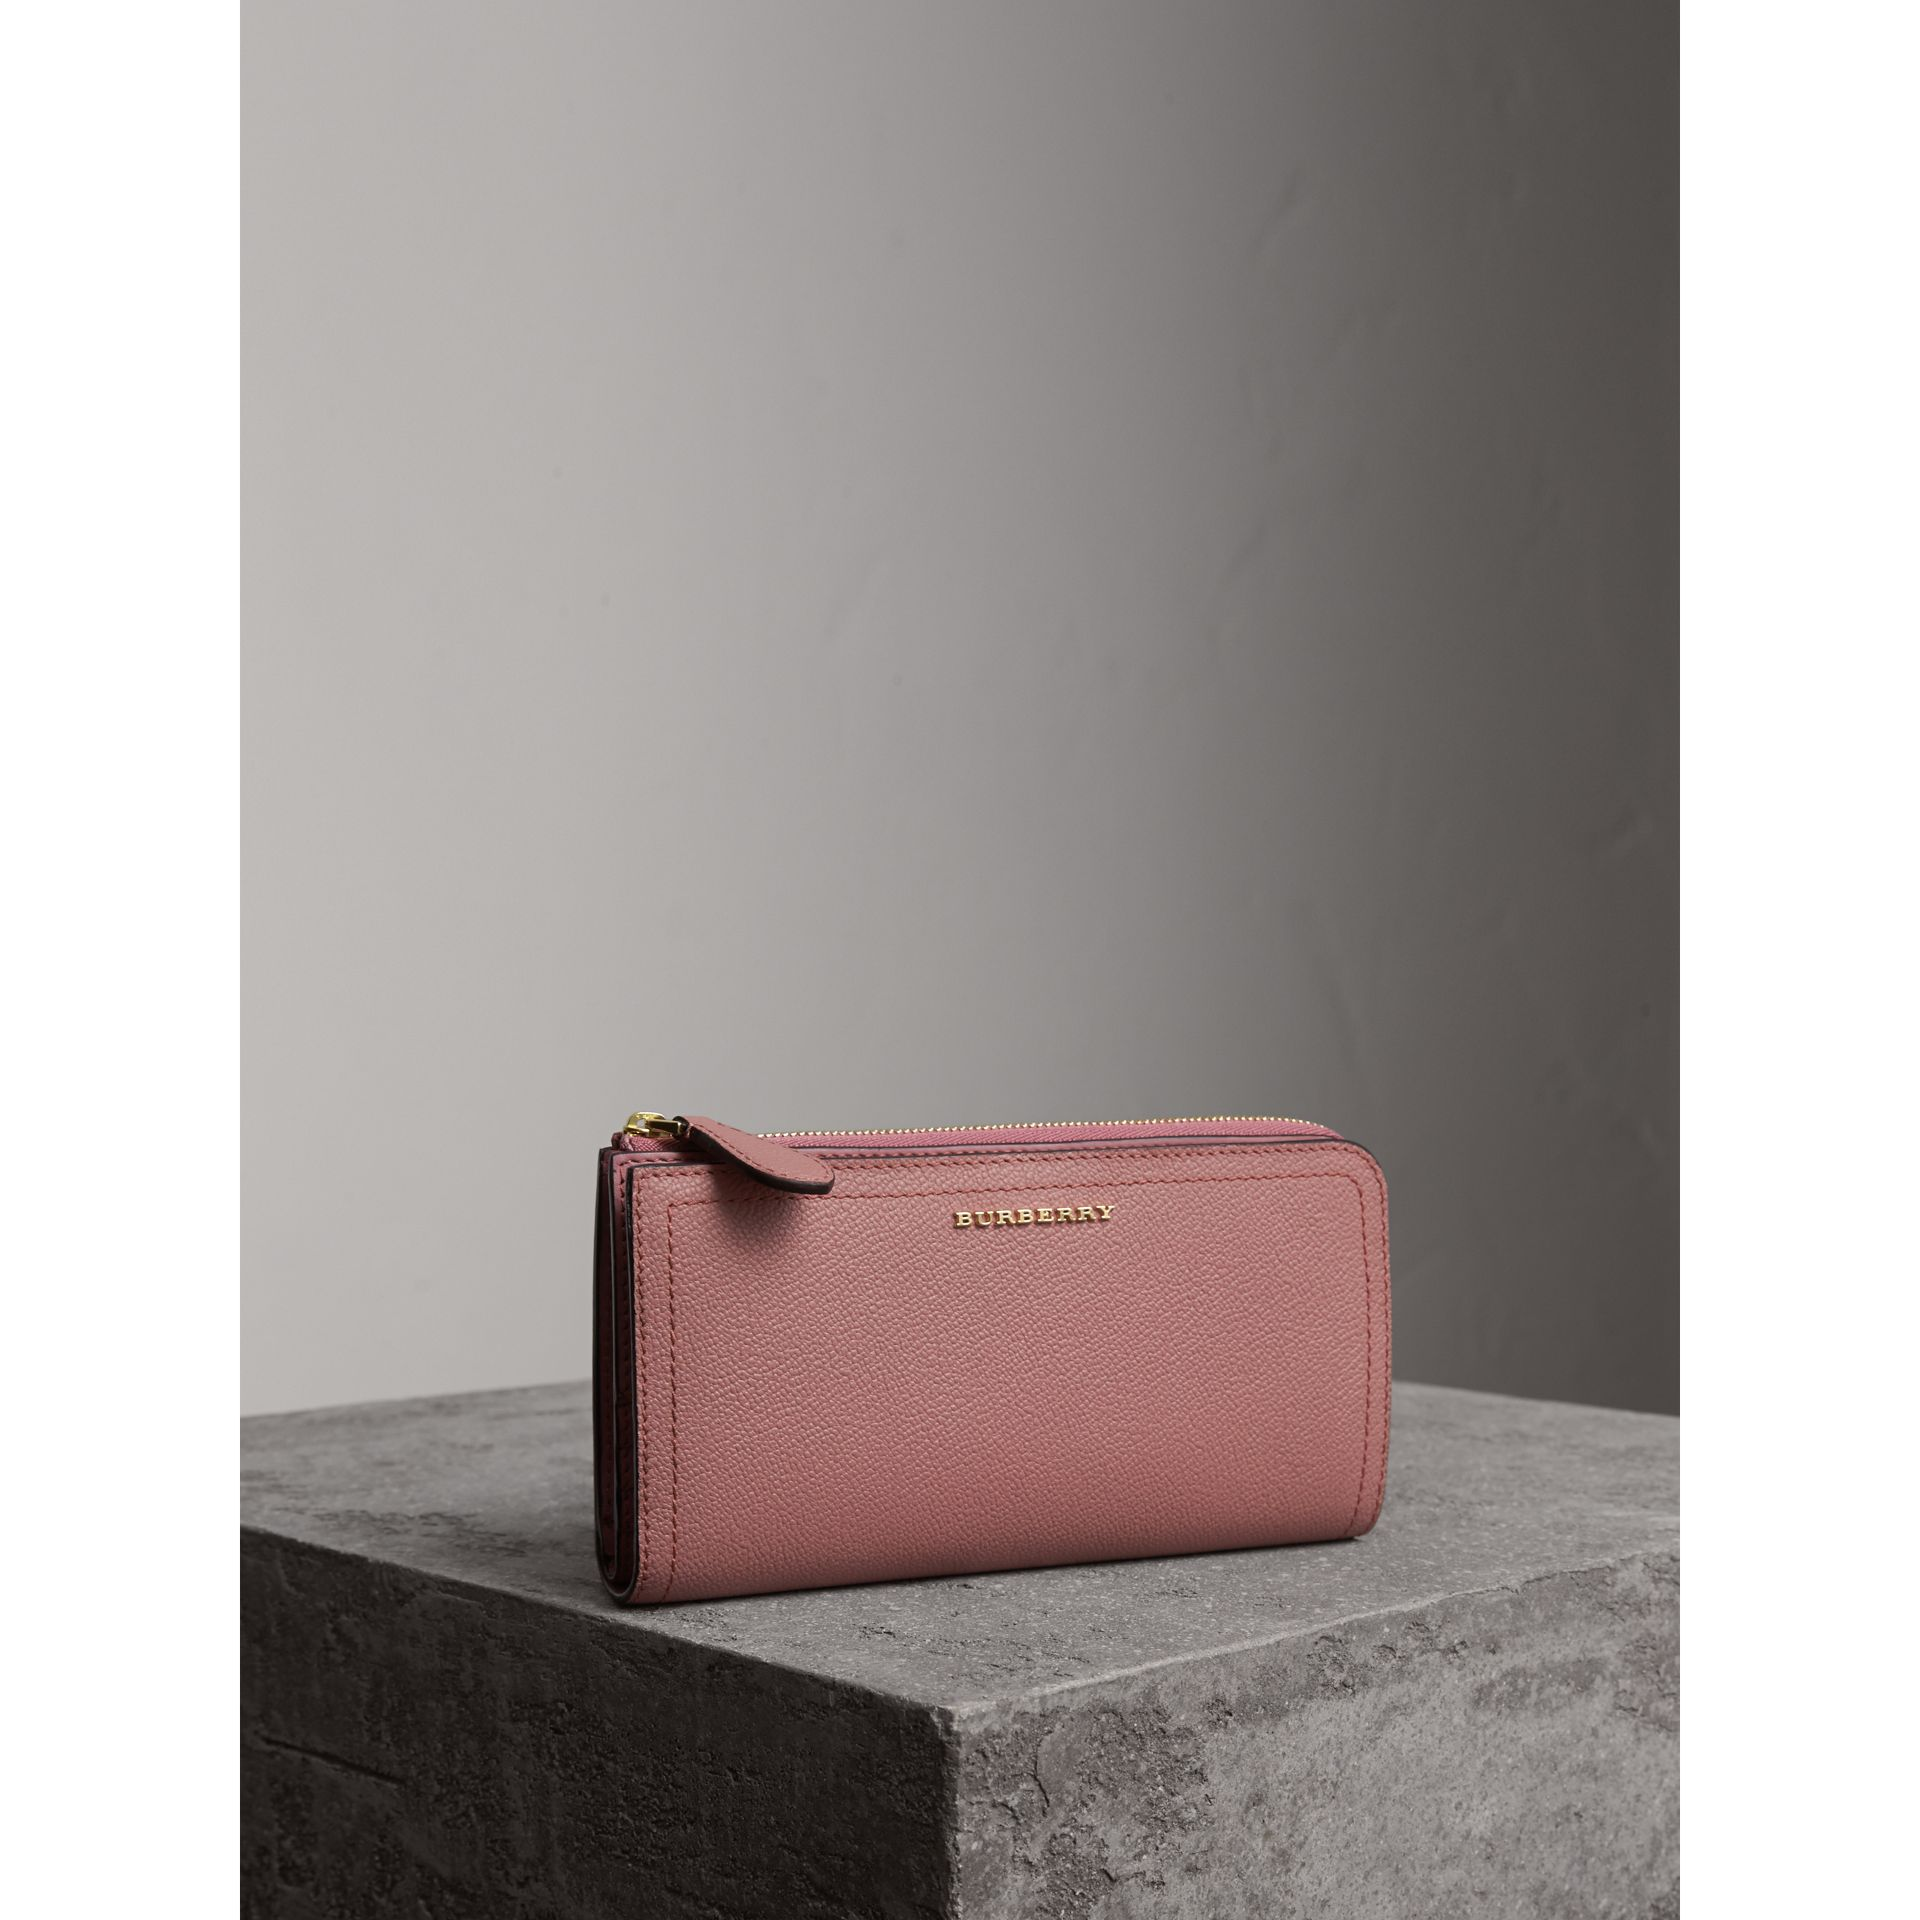 Grainy Leather Ziparound Wallet in Dusty Pink - Women | Burberry United States - gallery image 1